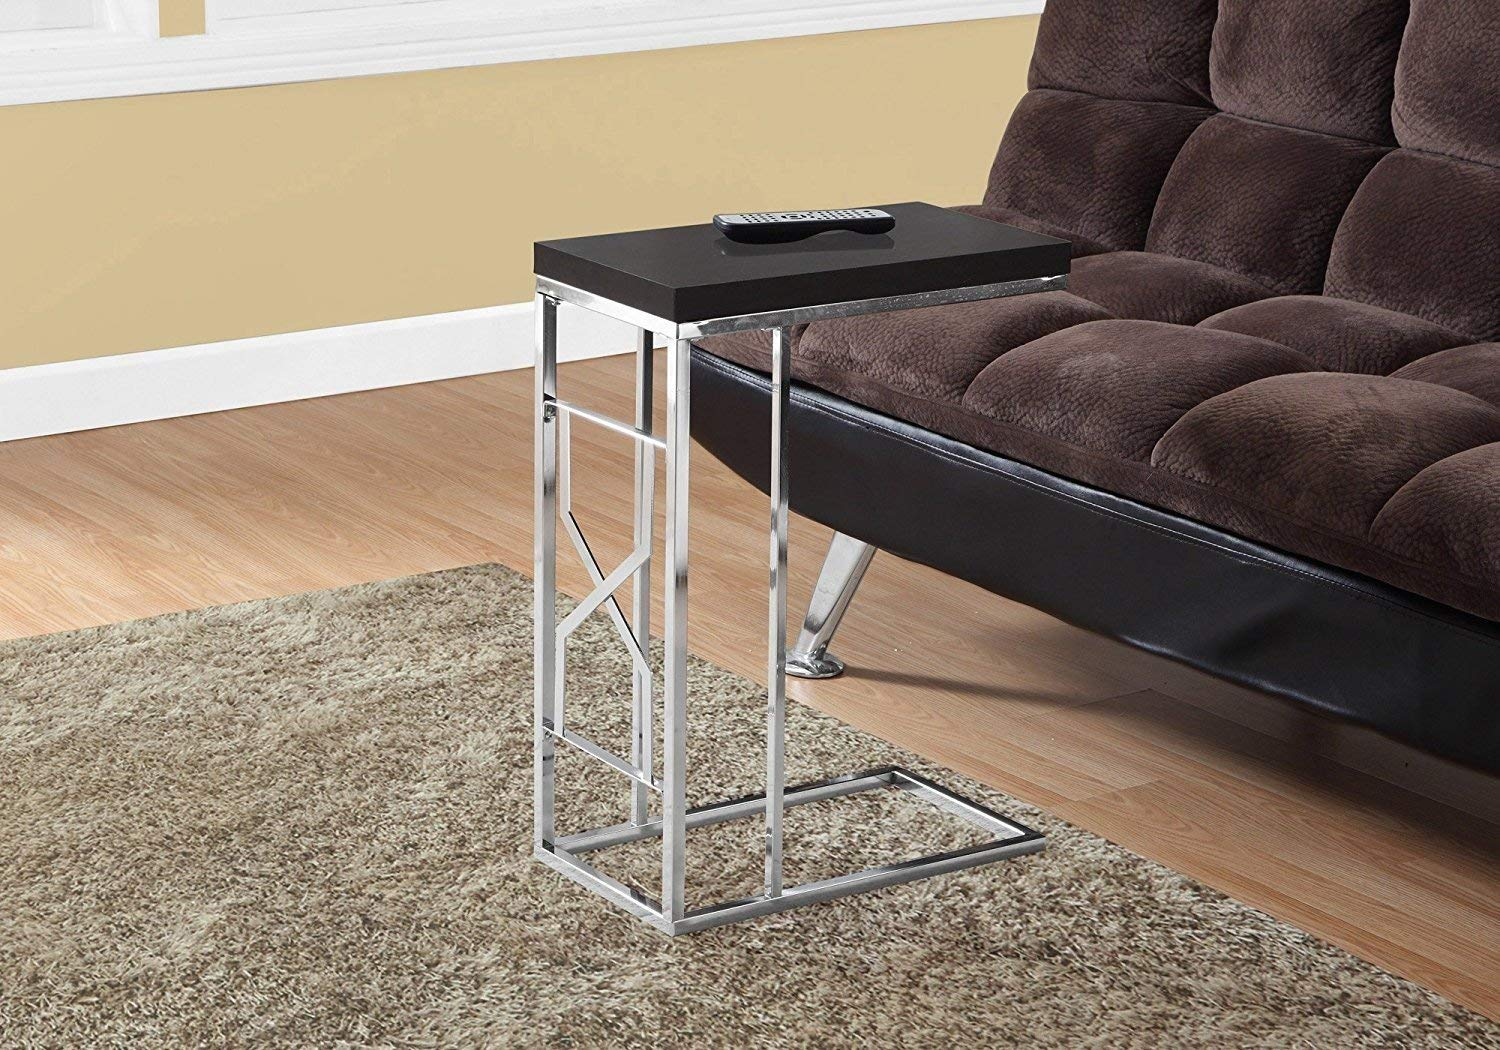 Indoor Multi-Function Accent Table Study Computer Home Office Desk Bedroom Living Room Modern Style End Table Sofa Side Table Coffee Table Metal accent table